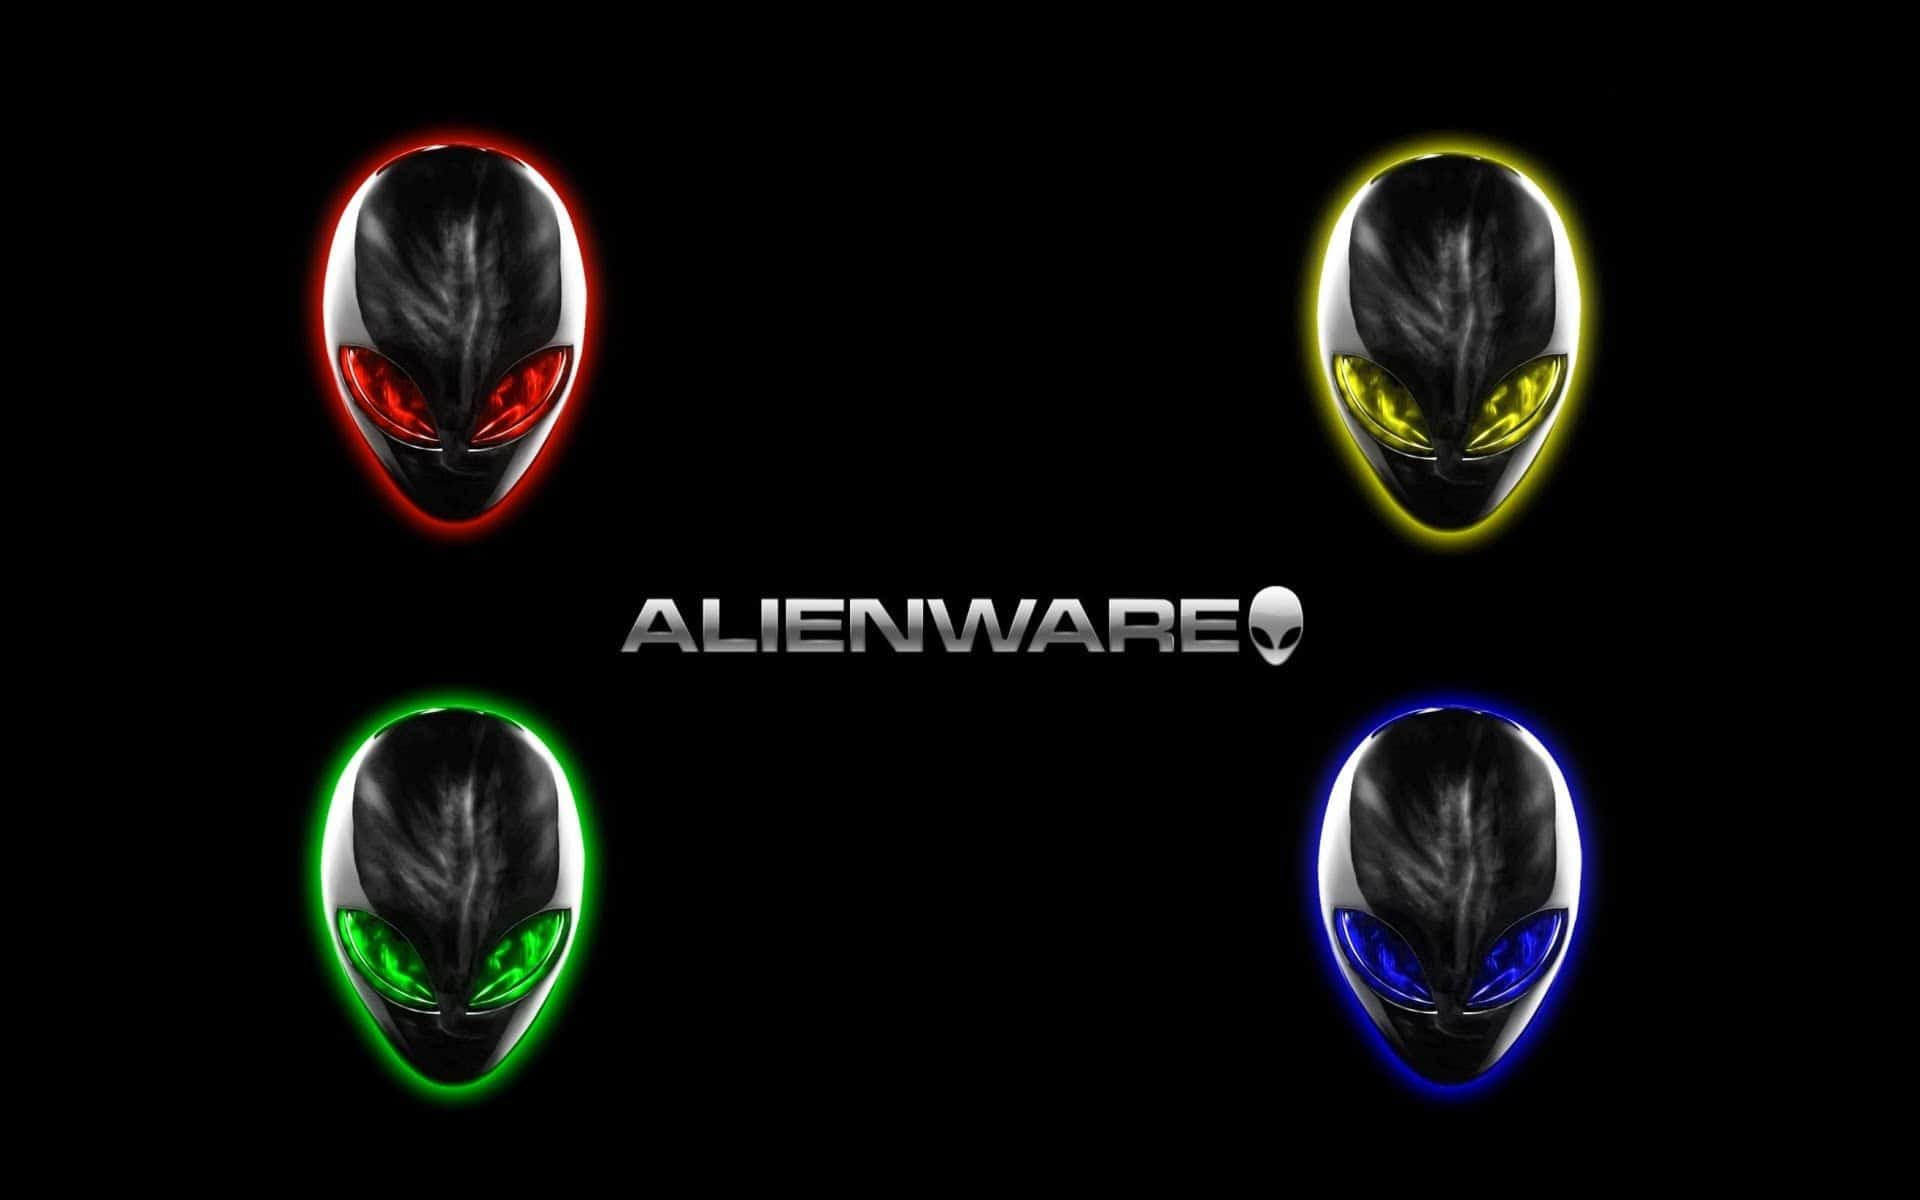 amazon Alienware M18x reviews Alienware M18x on amazon newest Alienware M18x prices of Alienware M18x Alienware M18x deals best deals on Alienware M18x buying a Alienware M18x lastest Alienware M18x what is a Alienware M18x Alienware M18x at amazon where to buy Alienware M18x where can i you get a Alienware M18x online purchase Alienware M18x Alienware M18x sale off Alienware M18x discount cheapest Alienware M18x  Alienware M18x for sale